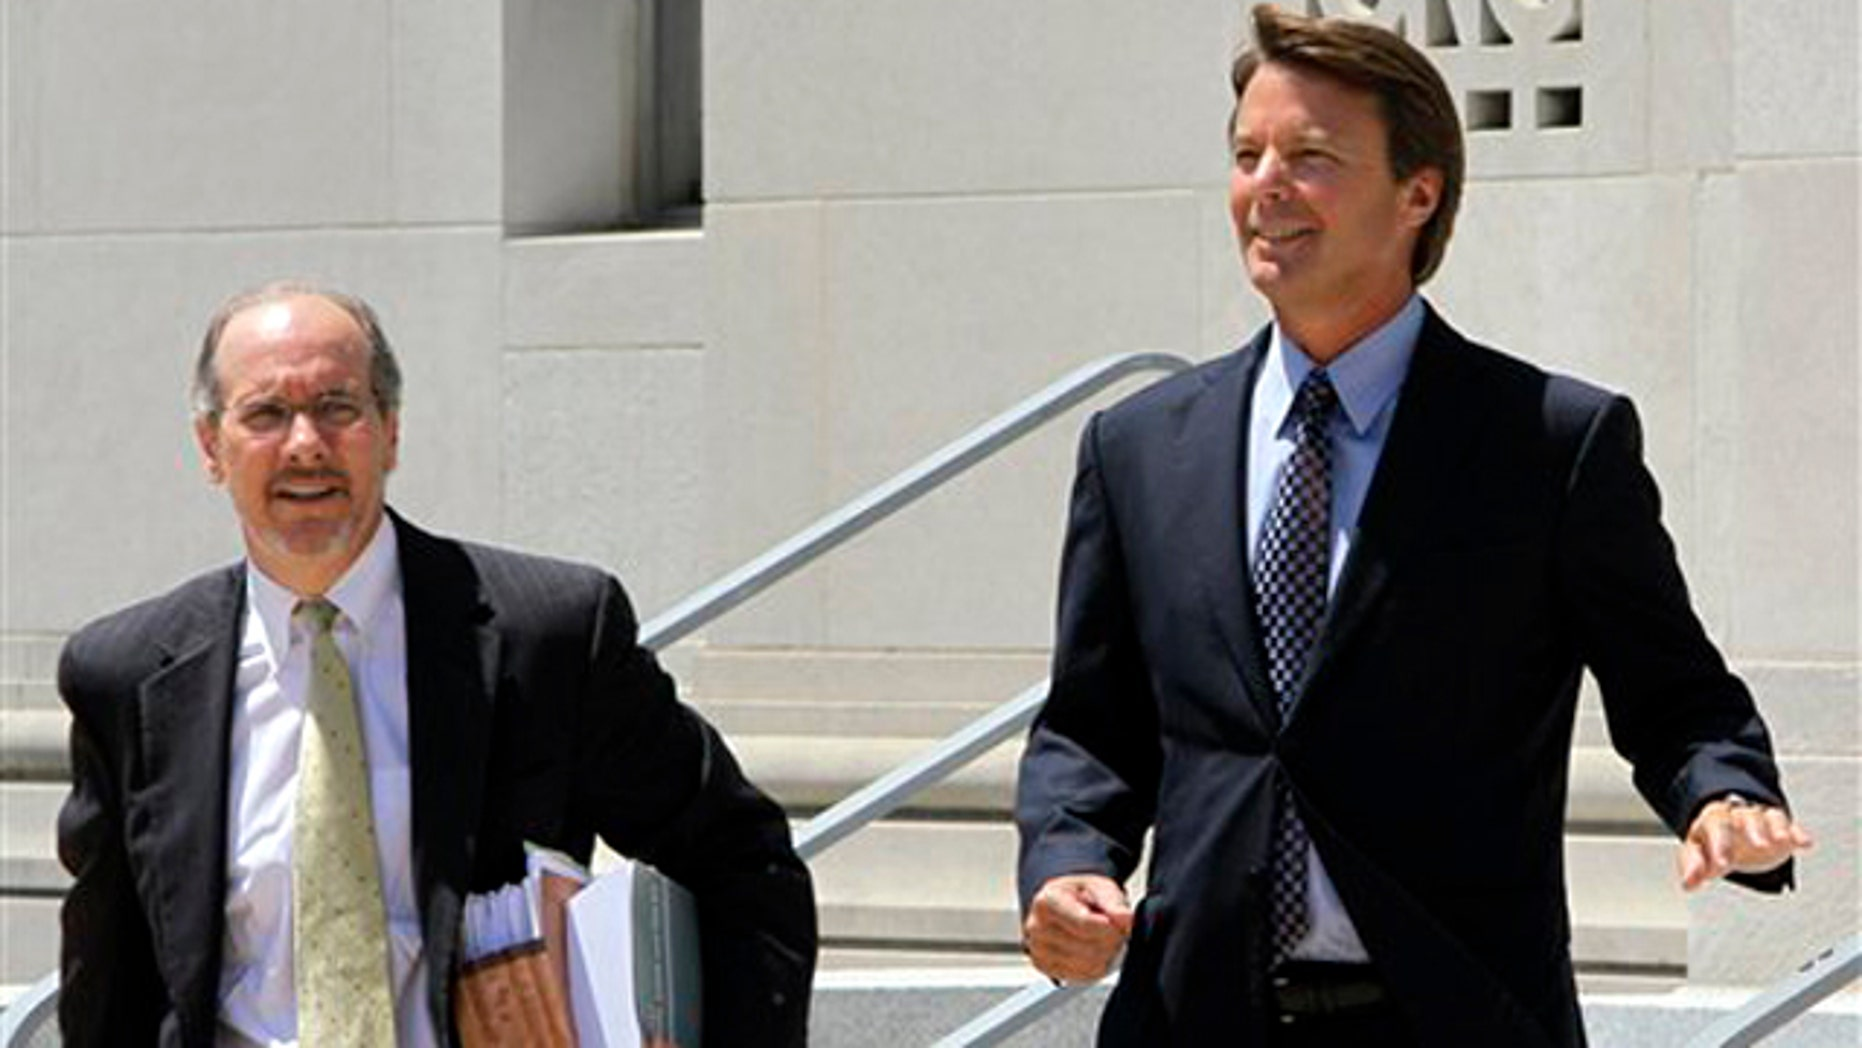 Former presidential candidate John Edwards, right, leaves federal court with attorney Jim Cooney following an appearance in Greensboro, N.C., Thursday, July 14, 2011.